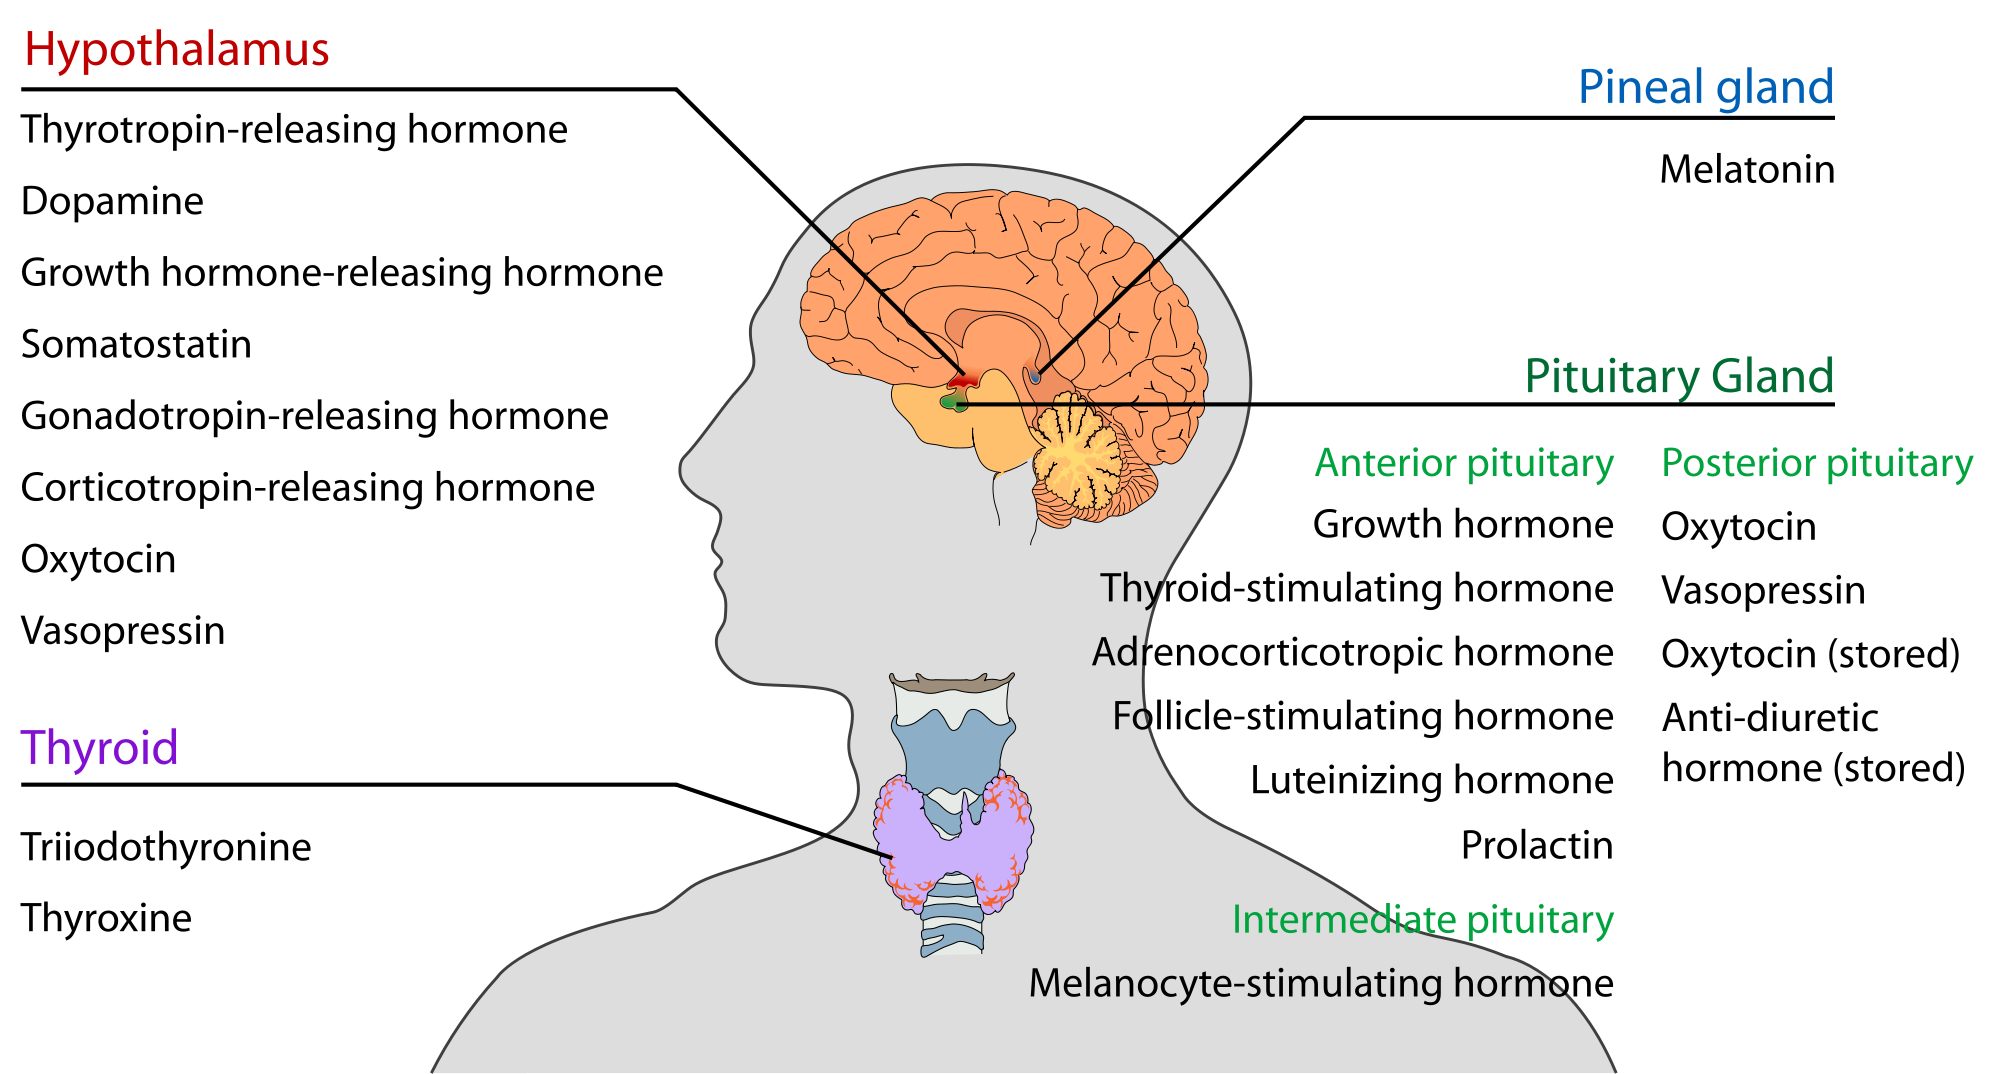 Endocrine System Brain Diagram